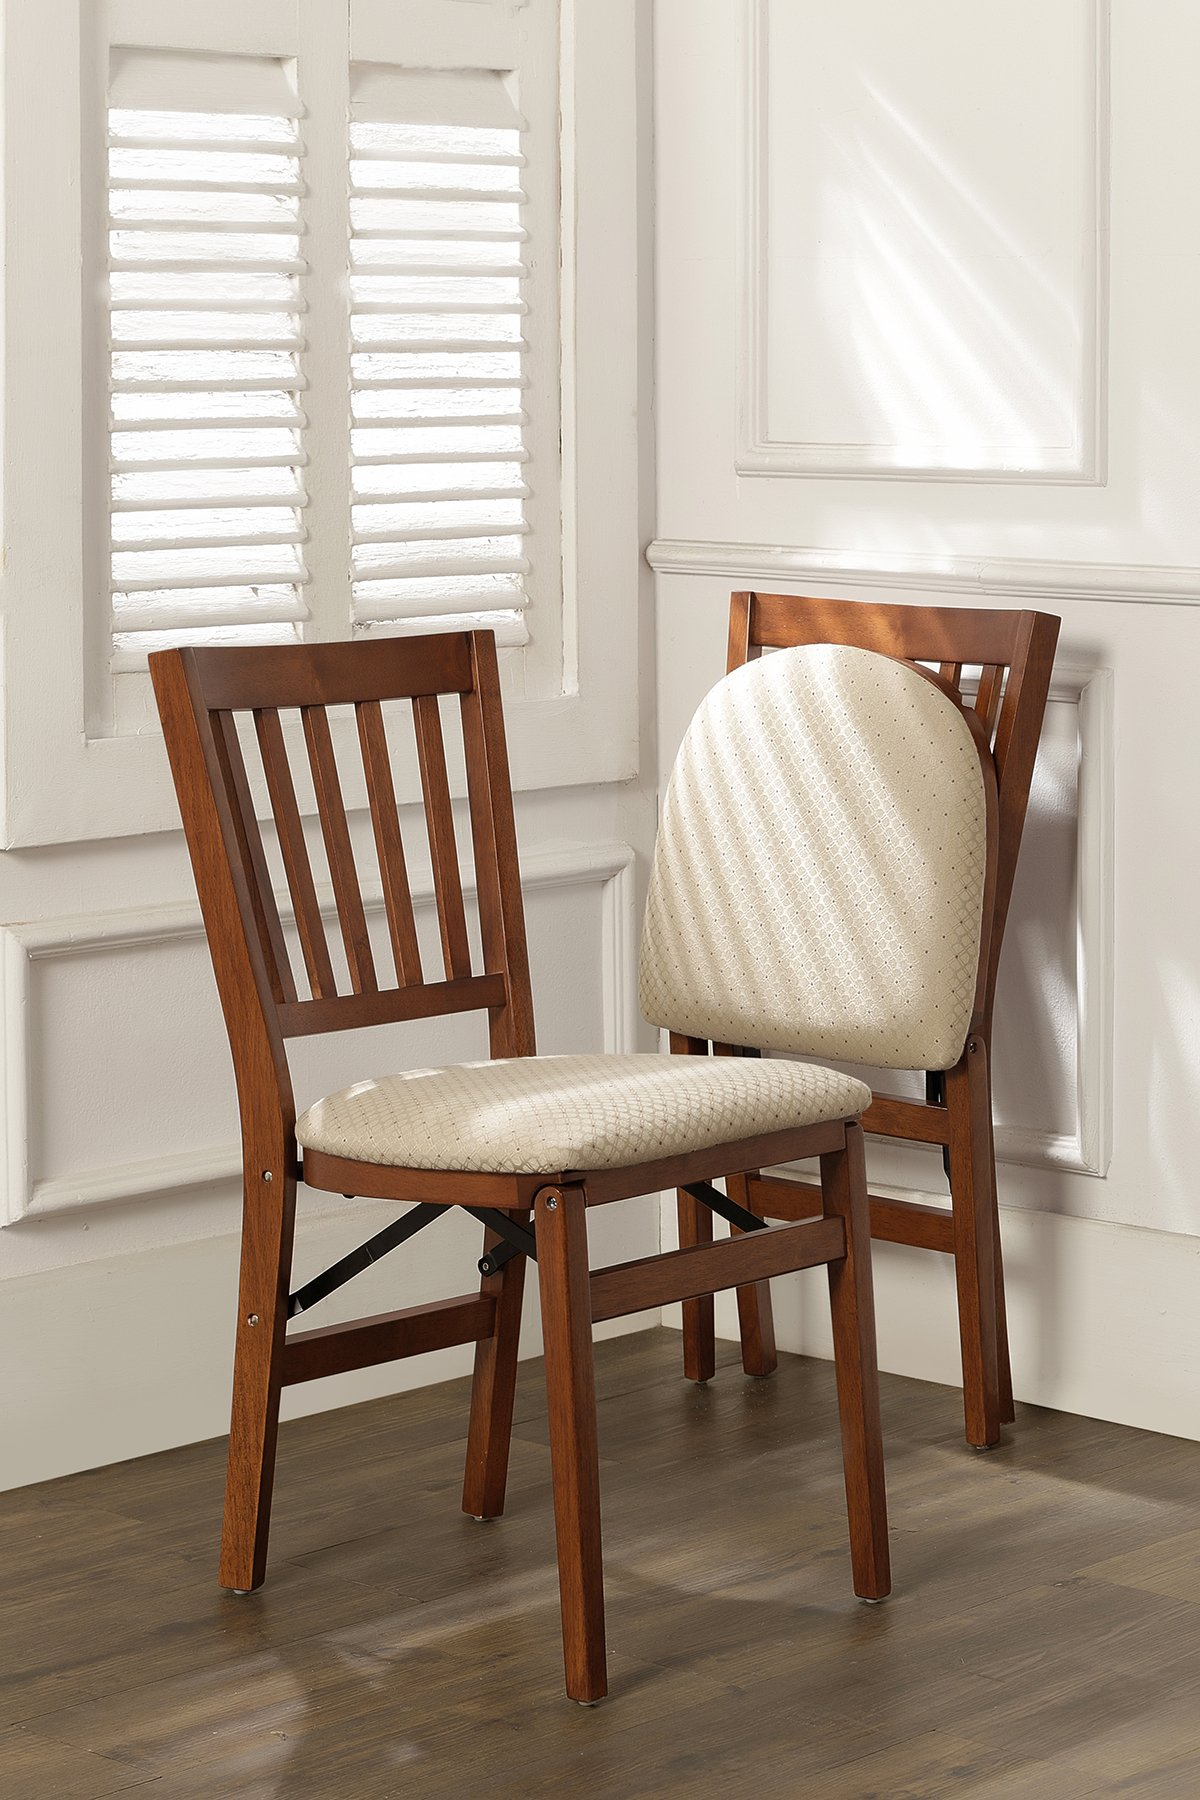 Stakmore School House Folding Chair Finish, Set of 2, Cherry by MECO (Image #3)